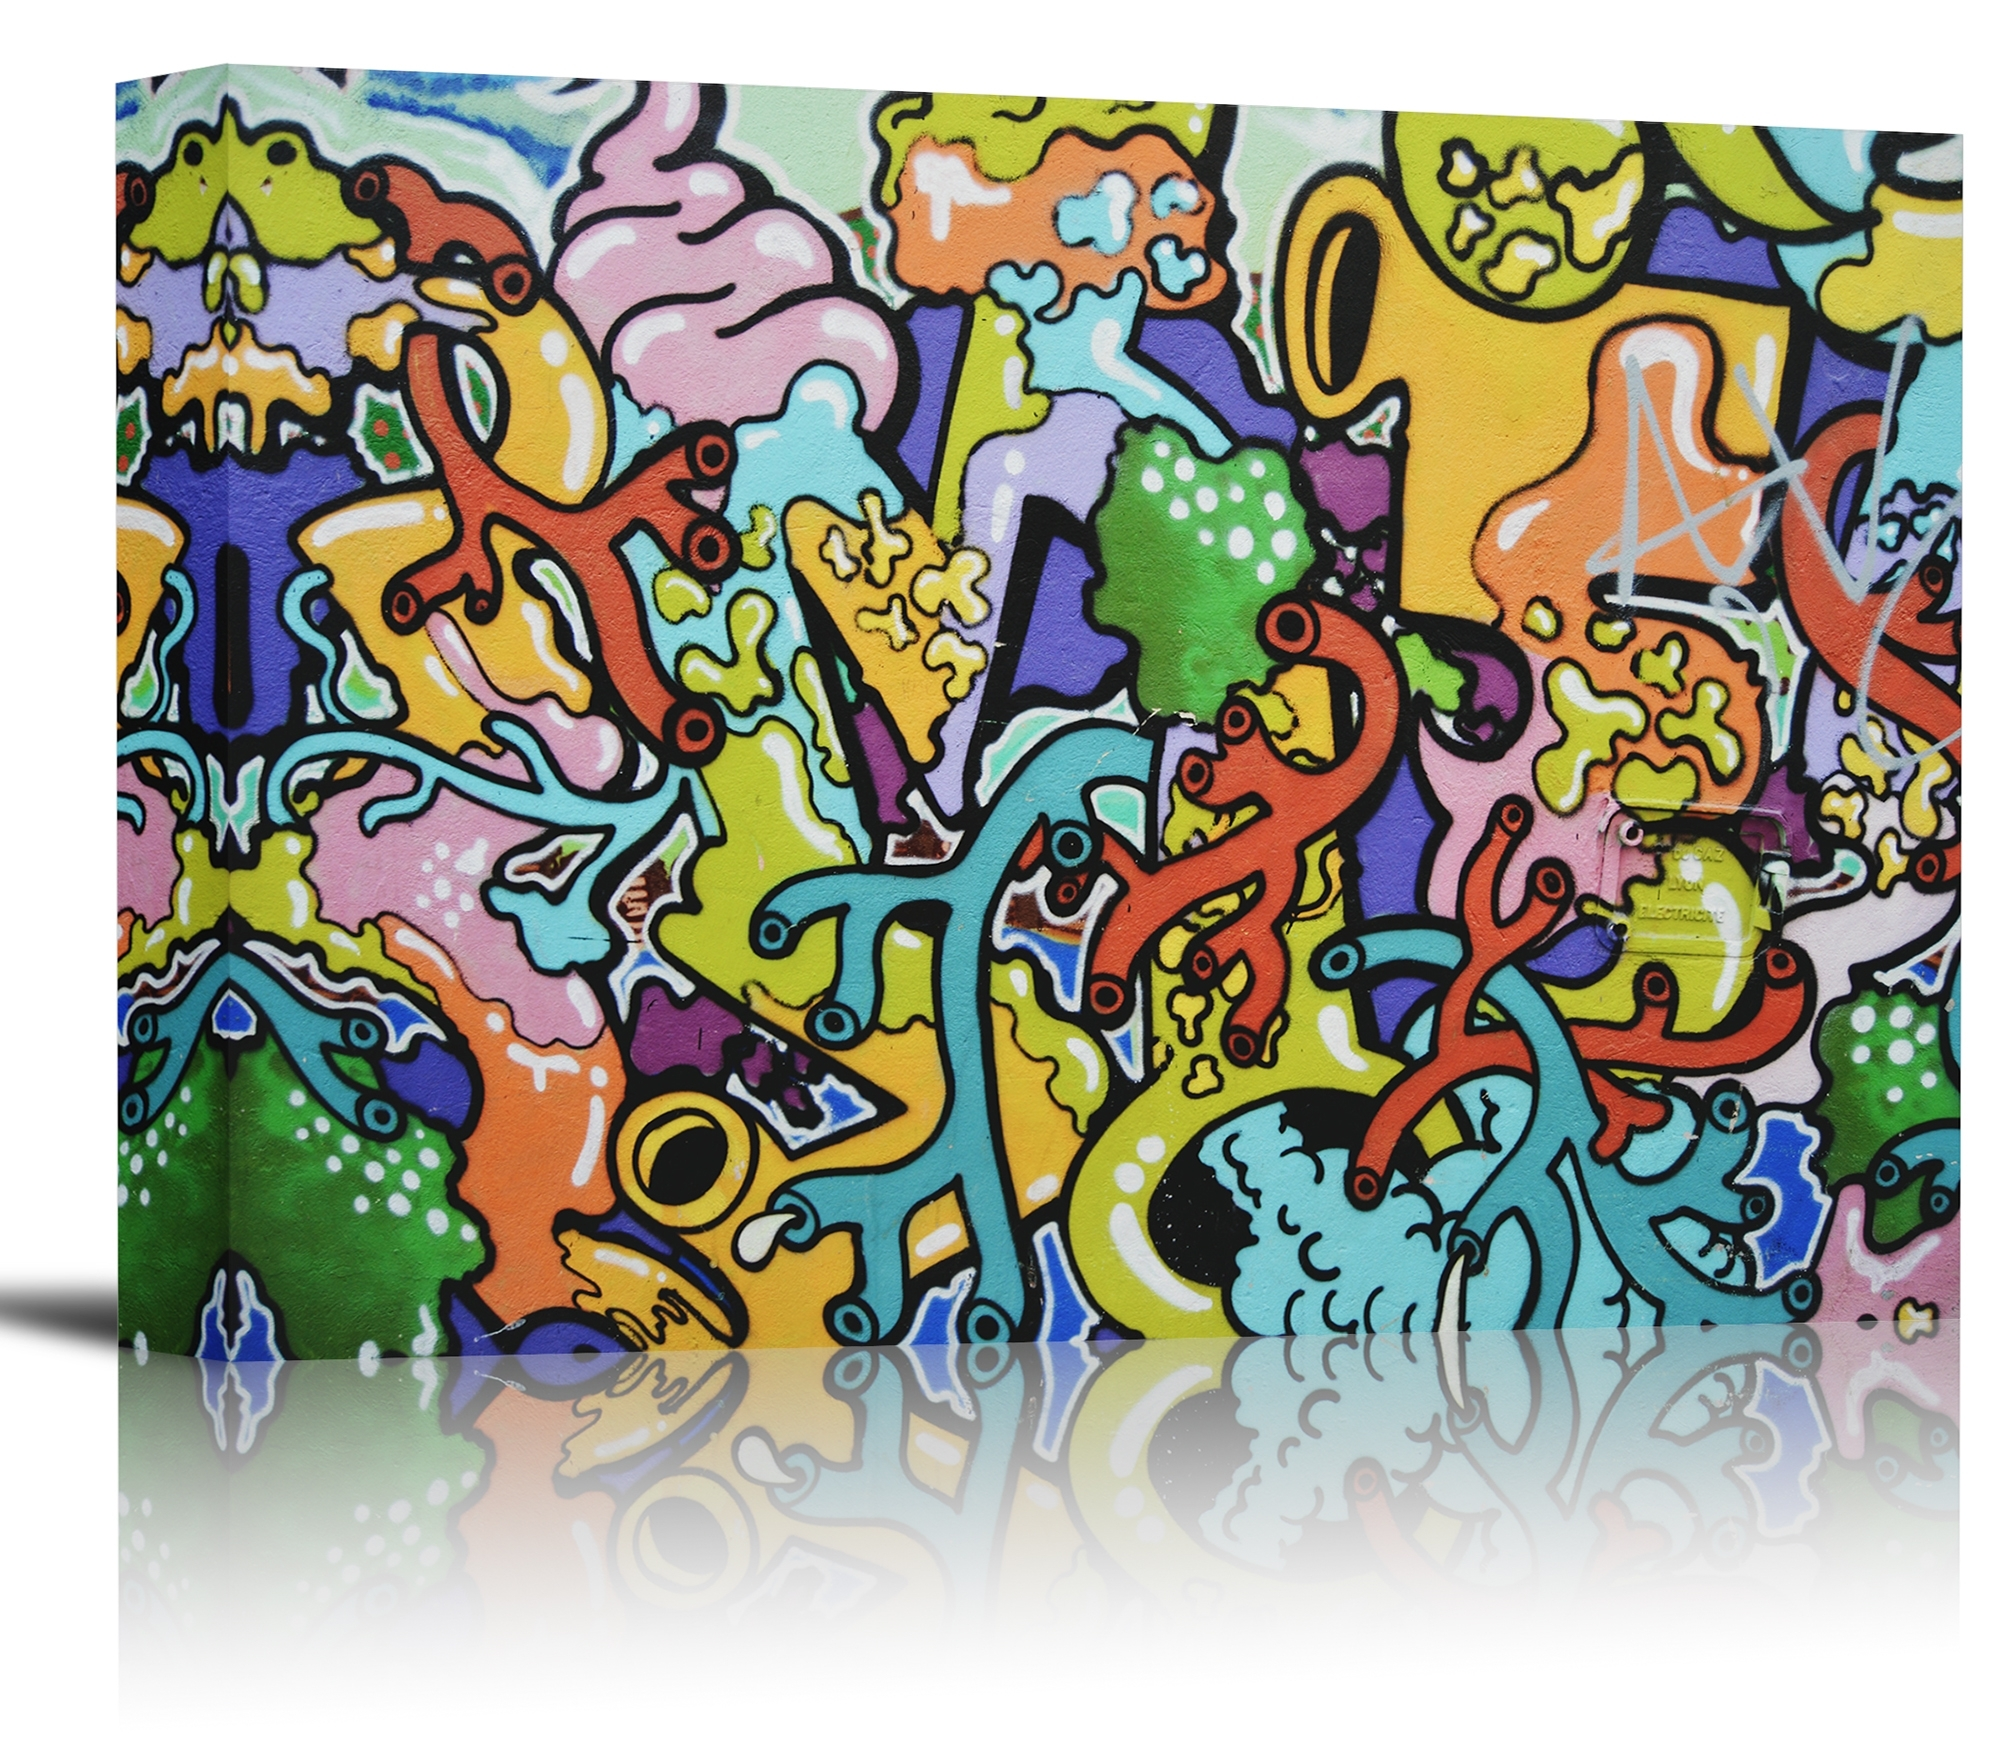 Graffiti Colorful Wall Art Print Decor Image – Canvas Stretched With Regard To Most Recently Released Colorful Wall Art (Gallery 2 of 20)